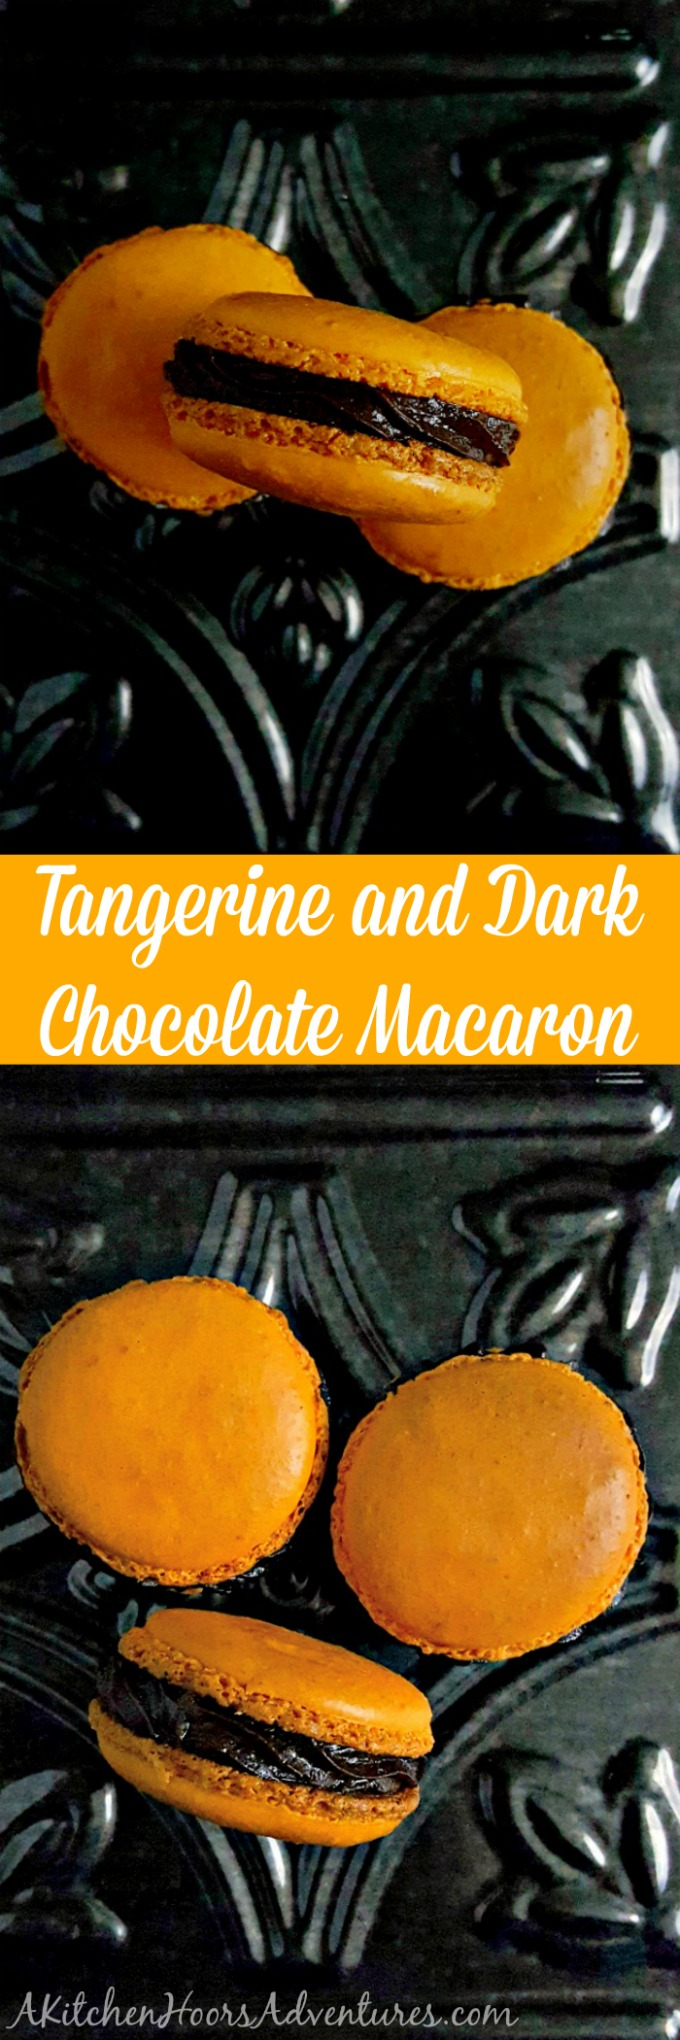 It's not the holiday season without orange and chocolate!  These Tangerine and Dark Chocolate Macaron are seriously crave-able!